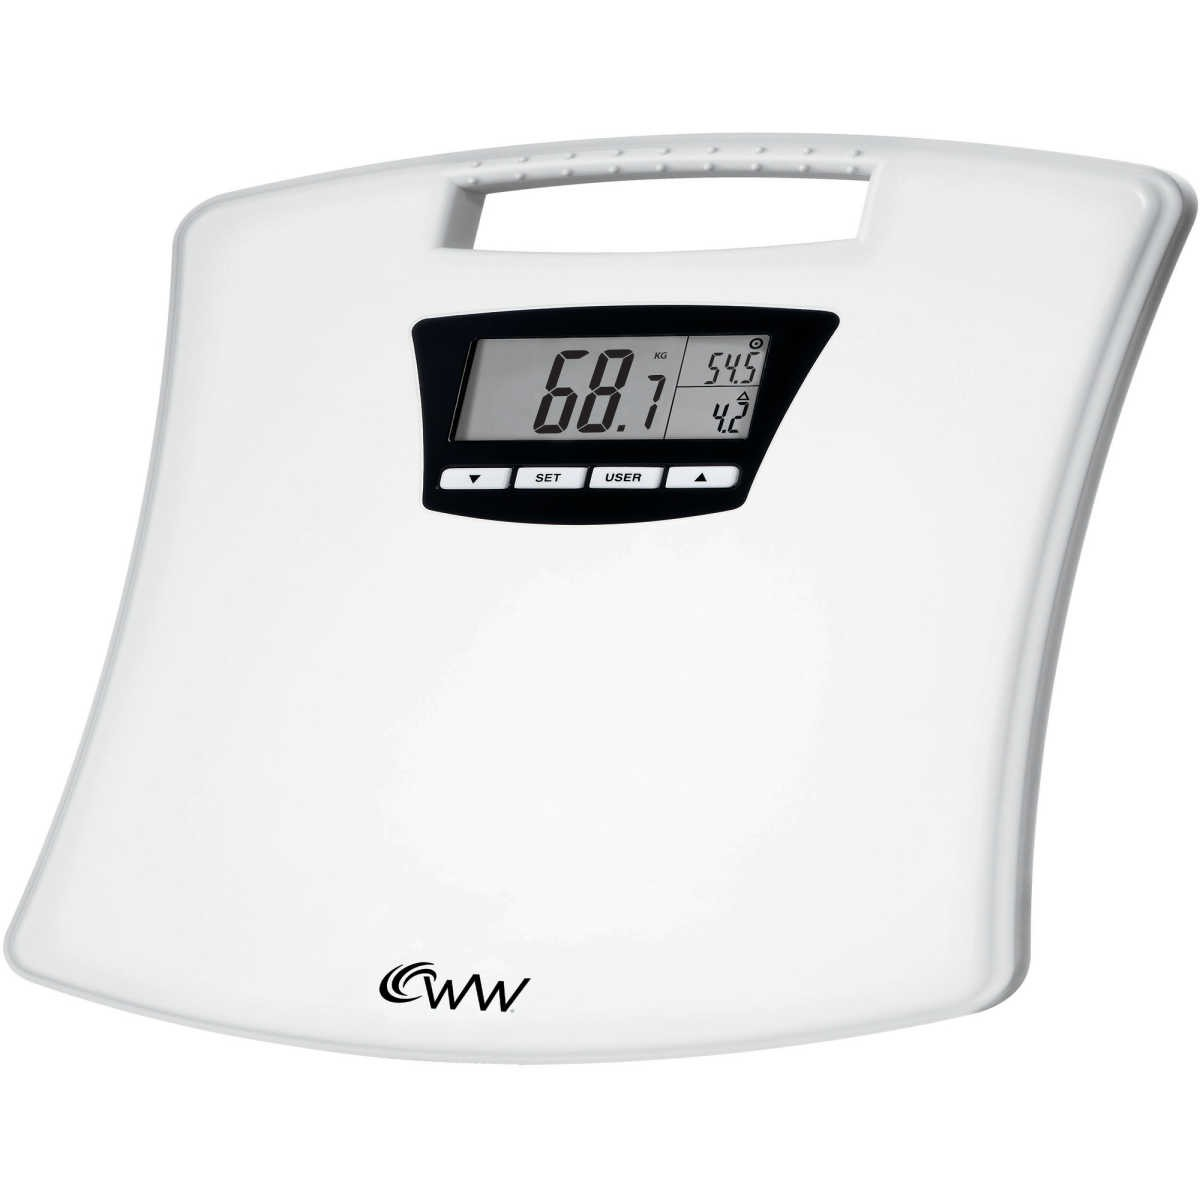 Luggage Scale Big W Weight Watchers Weight Tracking Electronic Scale Ww45a